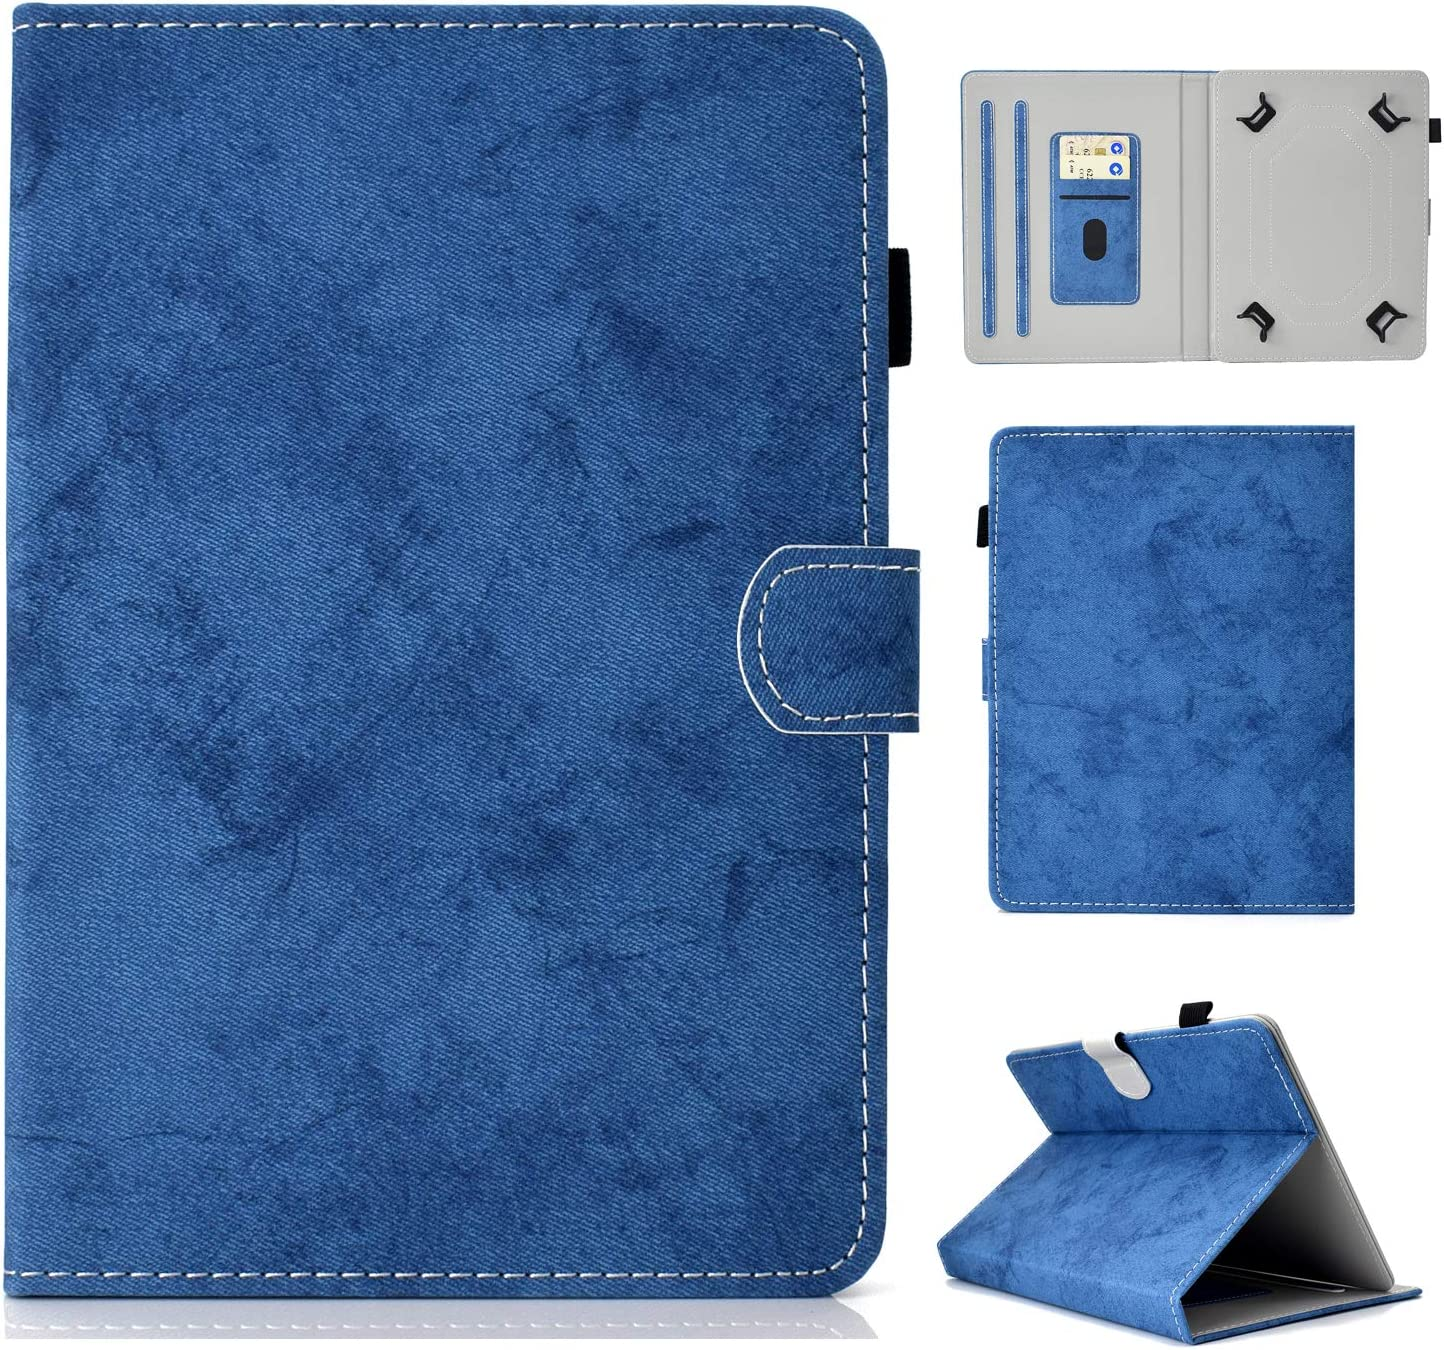 """UGOcase Universal 8.0"""" Tablet Case, Slim Fit Kickstand Folio Cover Pencil Holder Protective Cards Slots Case for Fire HD 8, Galaxy Tab, RCA, ASUS, Acer and More 7.5-8.5"""" Tablet, Blue"""